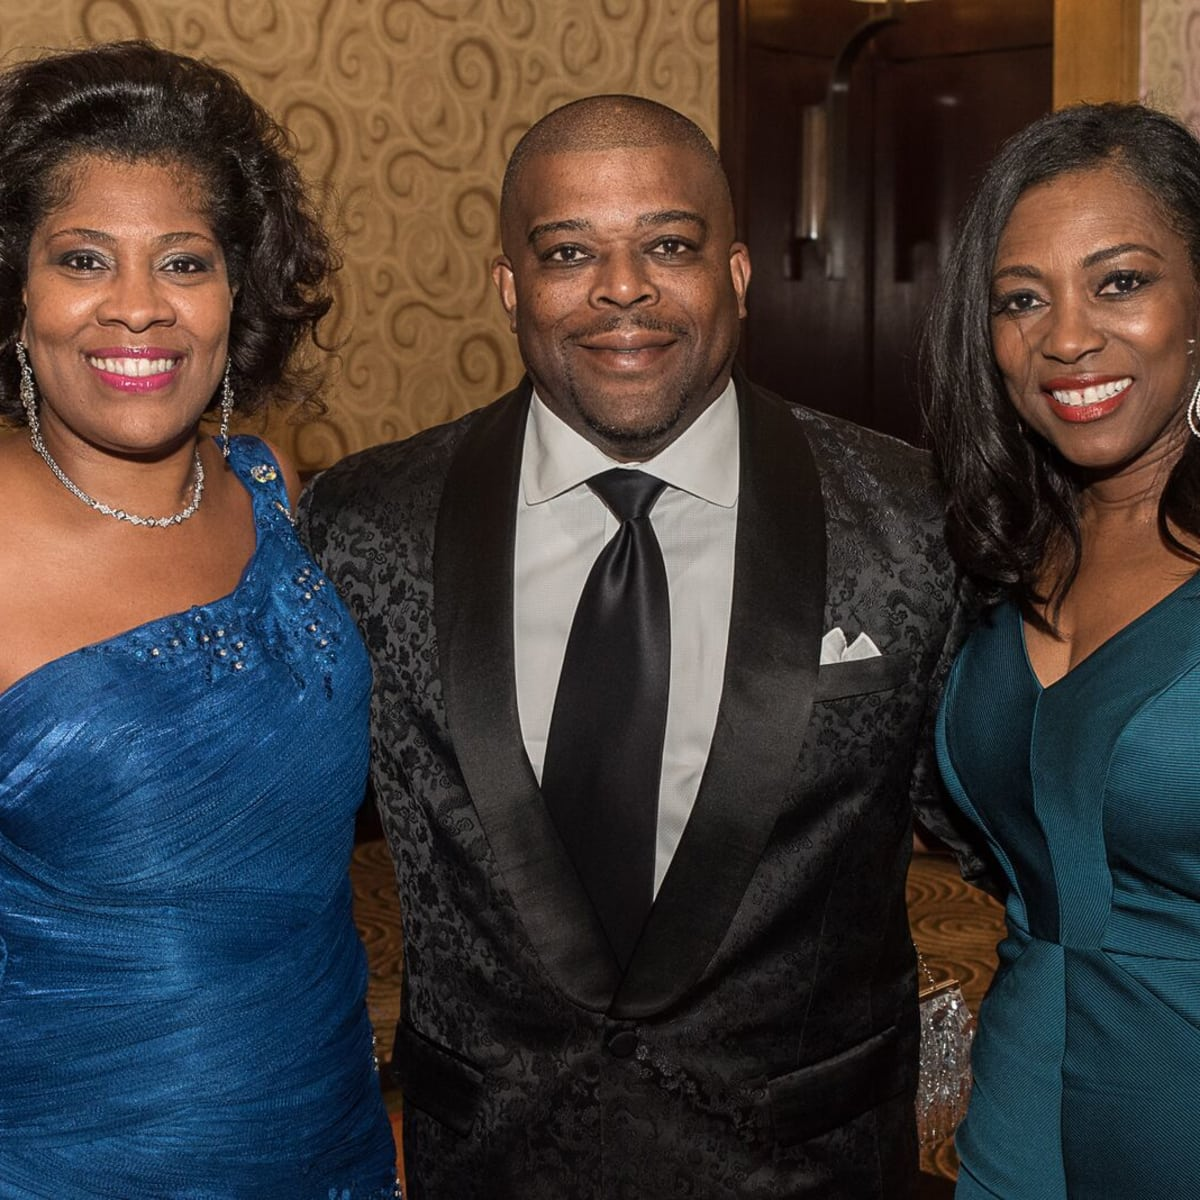 News, Shelby, Ensemble Theatre gala, Aug. 2015, Diedra Fontaine, Terrence Fontaine